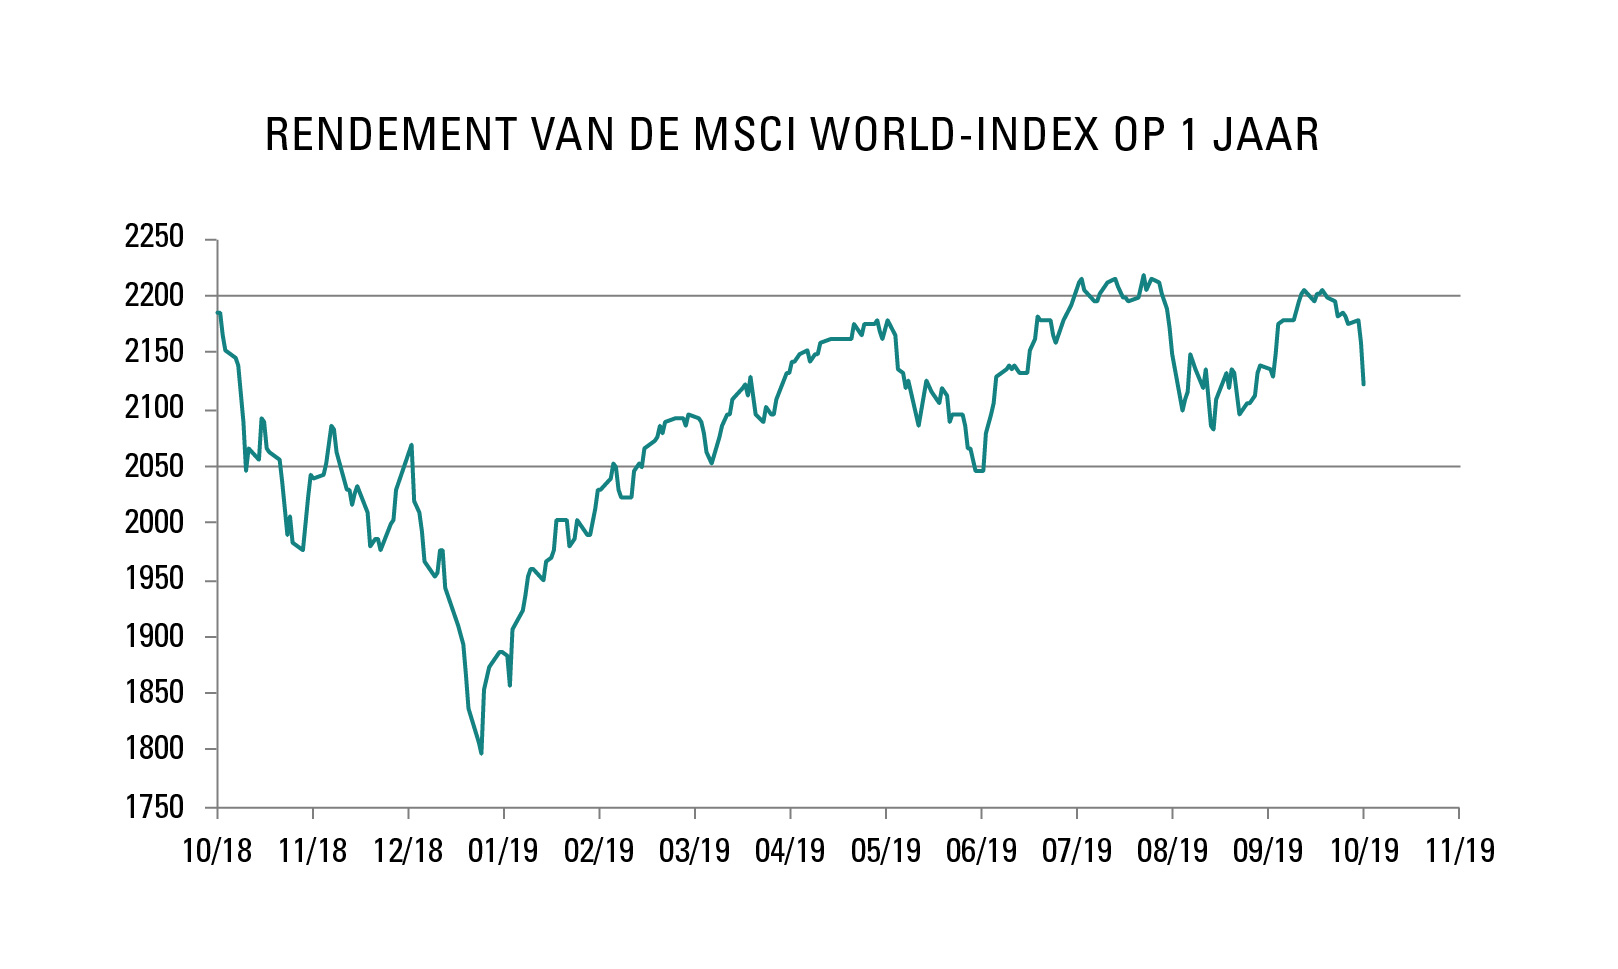 Rendement van de MSCI World-Index op 1 jaar